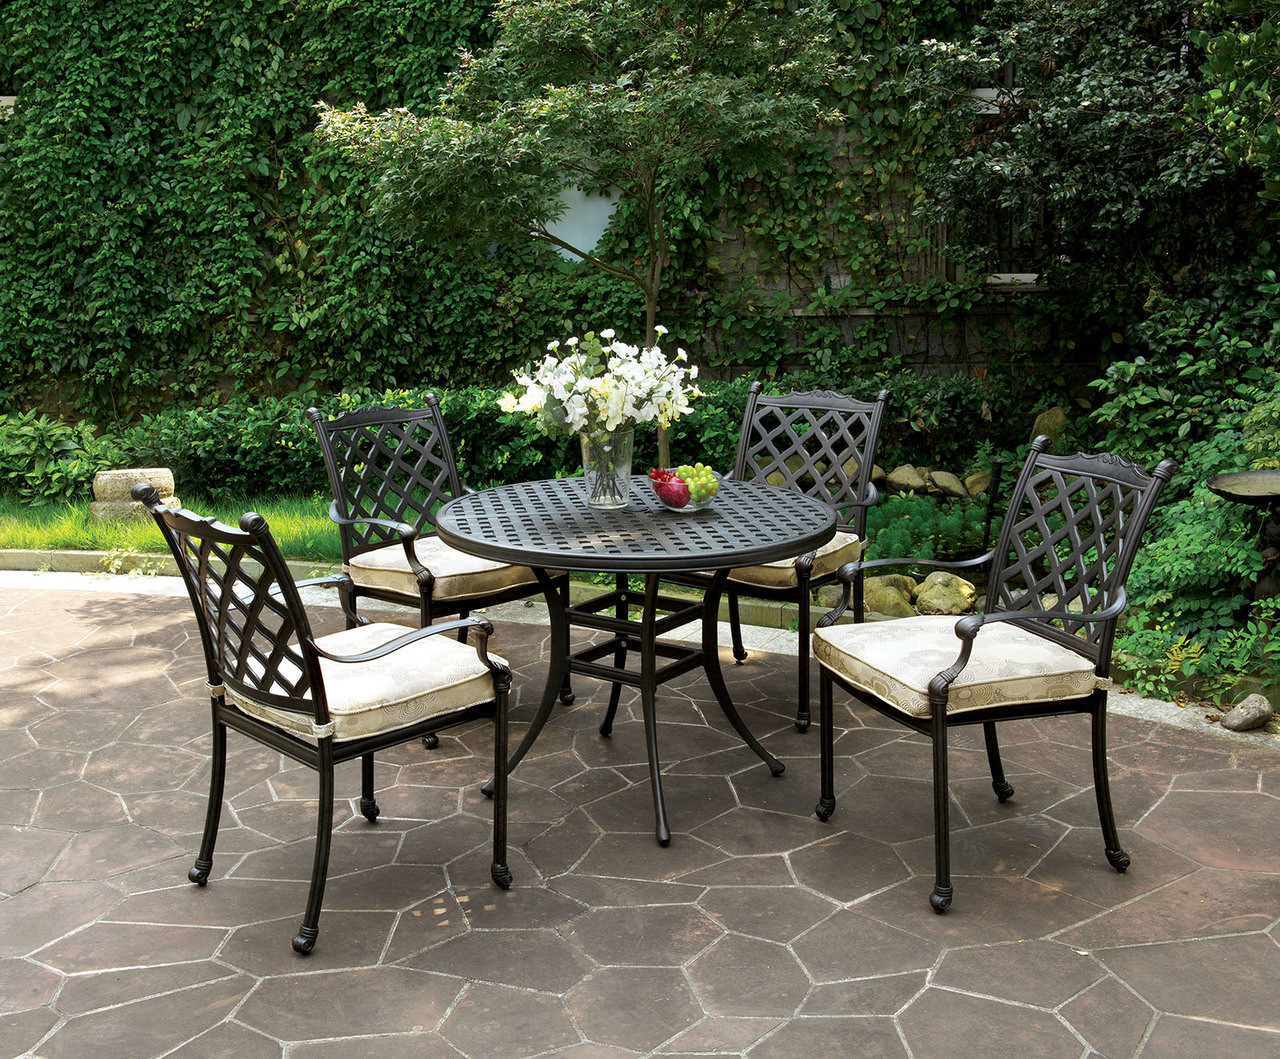 Chiara Outdoor Patio Round Dining Table Set | CHIARA Patio Table With 4 Arm  Chairs ...